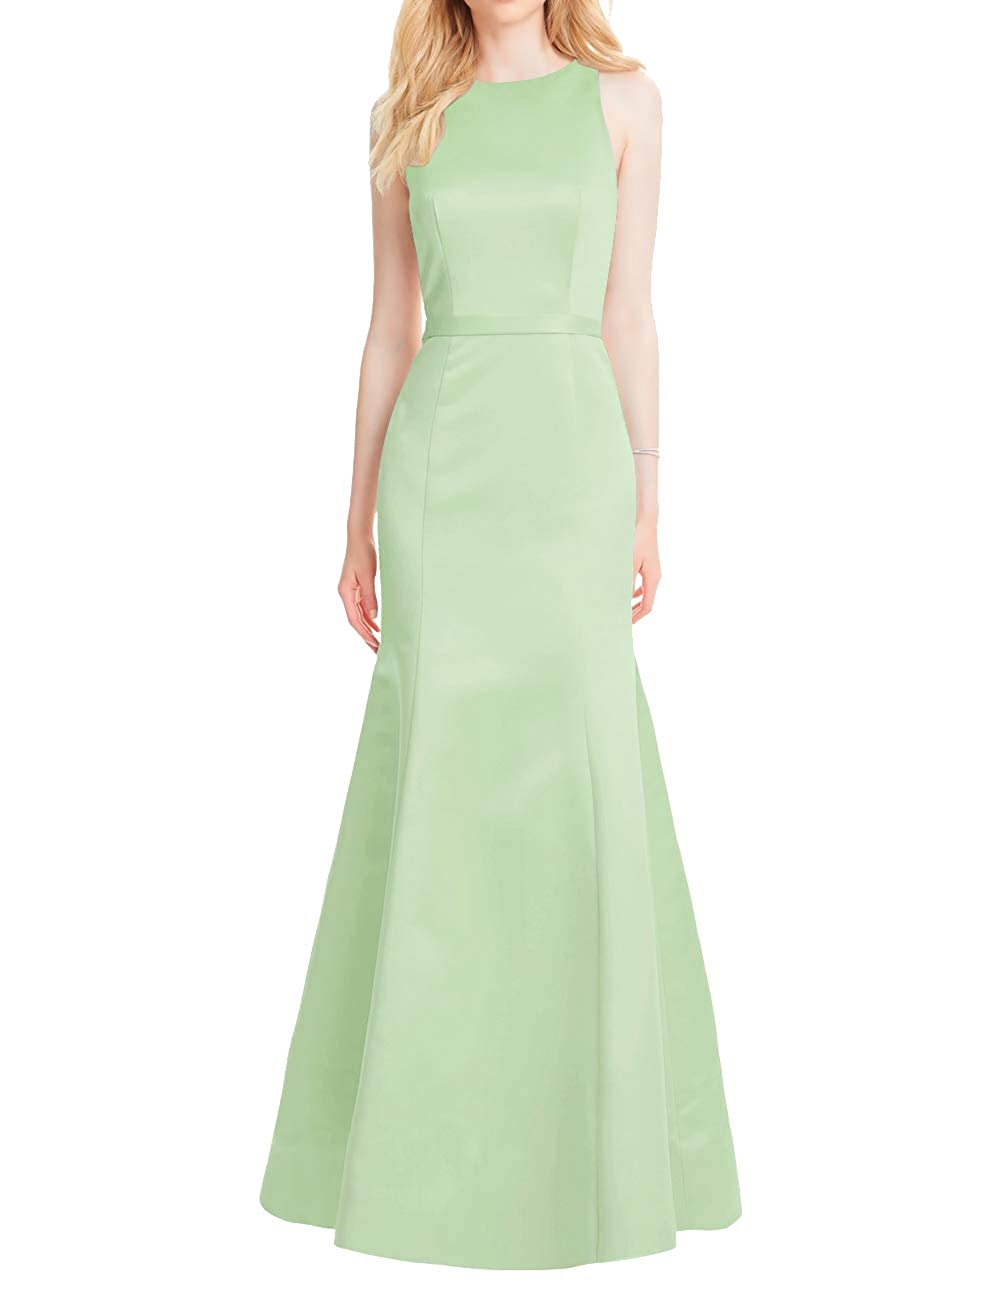 Mint Mermaid Prom Dresses Long Satin Evening Formal Gowns Backless Maxi Party Dress